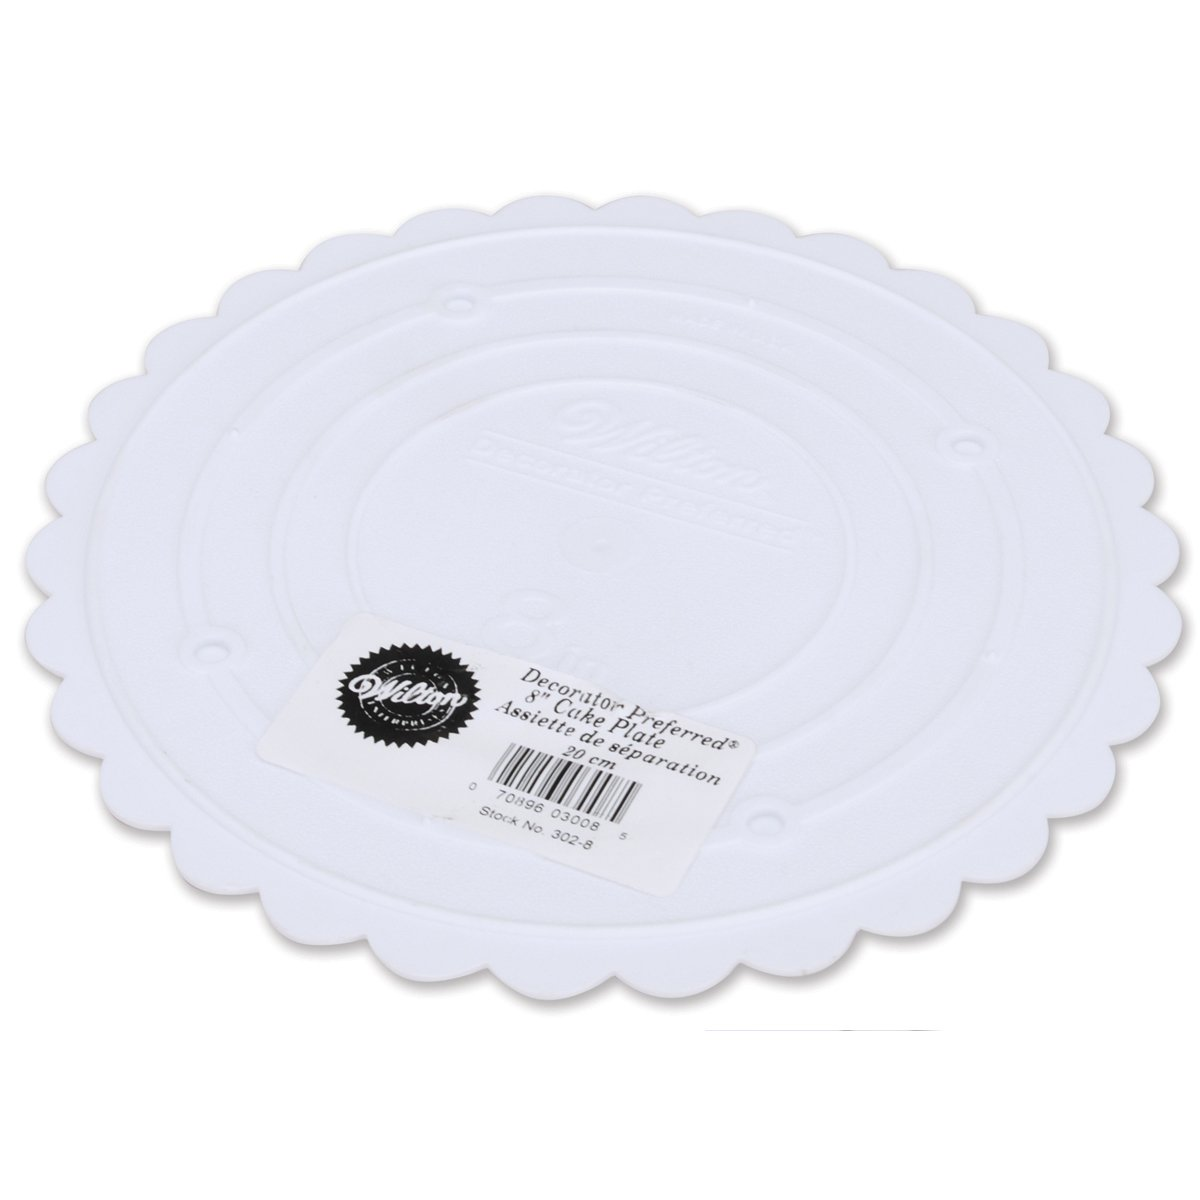 Amazon.com Wilton 302-8 Decorator Preferred Round Separator Plate for Cakes 8-Inch Childrens Party Plates Kitchen \u0026 Dining  sc 1 st  Amazon.com & Amazon.com: Wilton 302-8 Decorator Preferred Round Separator Plate ...